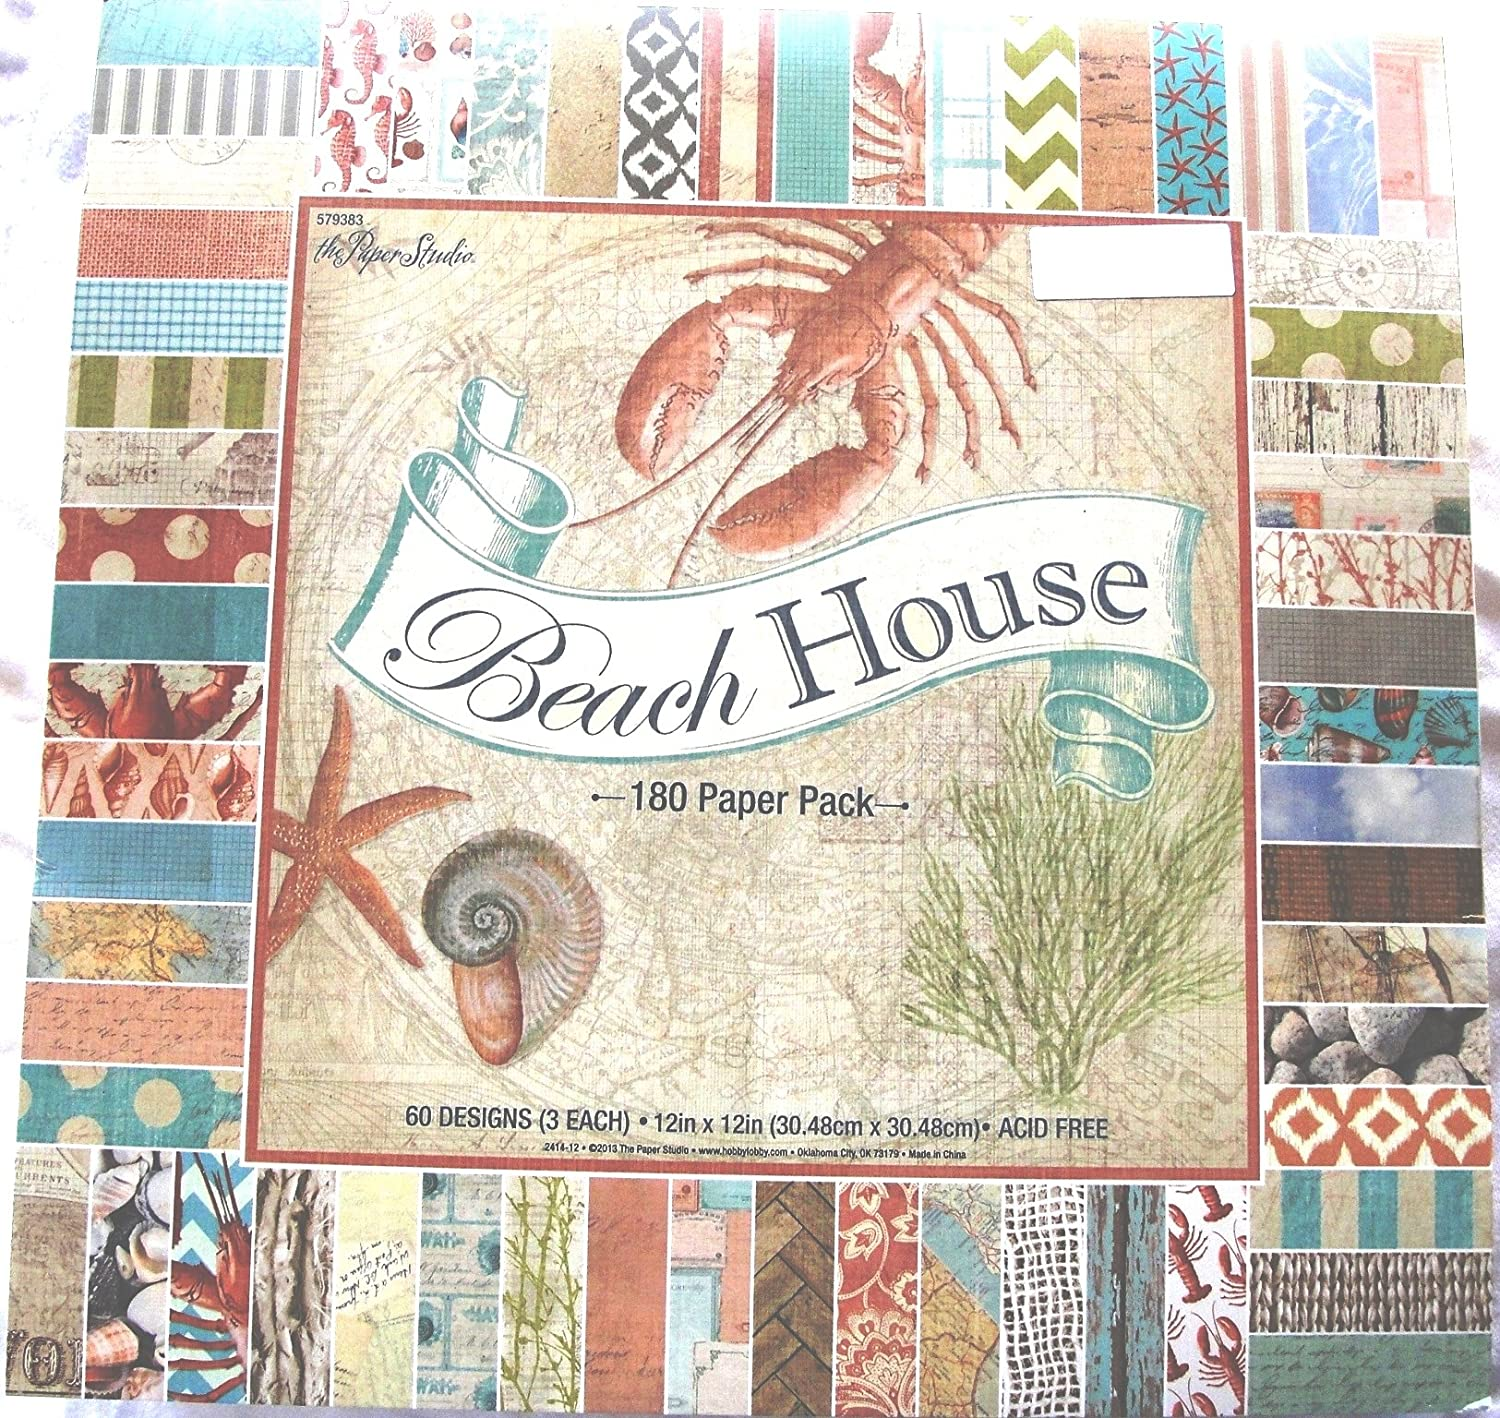 Beach House 12x12 Scrapbook Paper Pack, 180 sheets, the Paper Studio, Seahorses, coral reef, shells, conch, sand, coastal colors